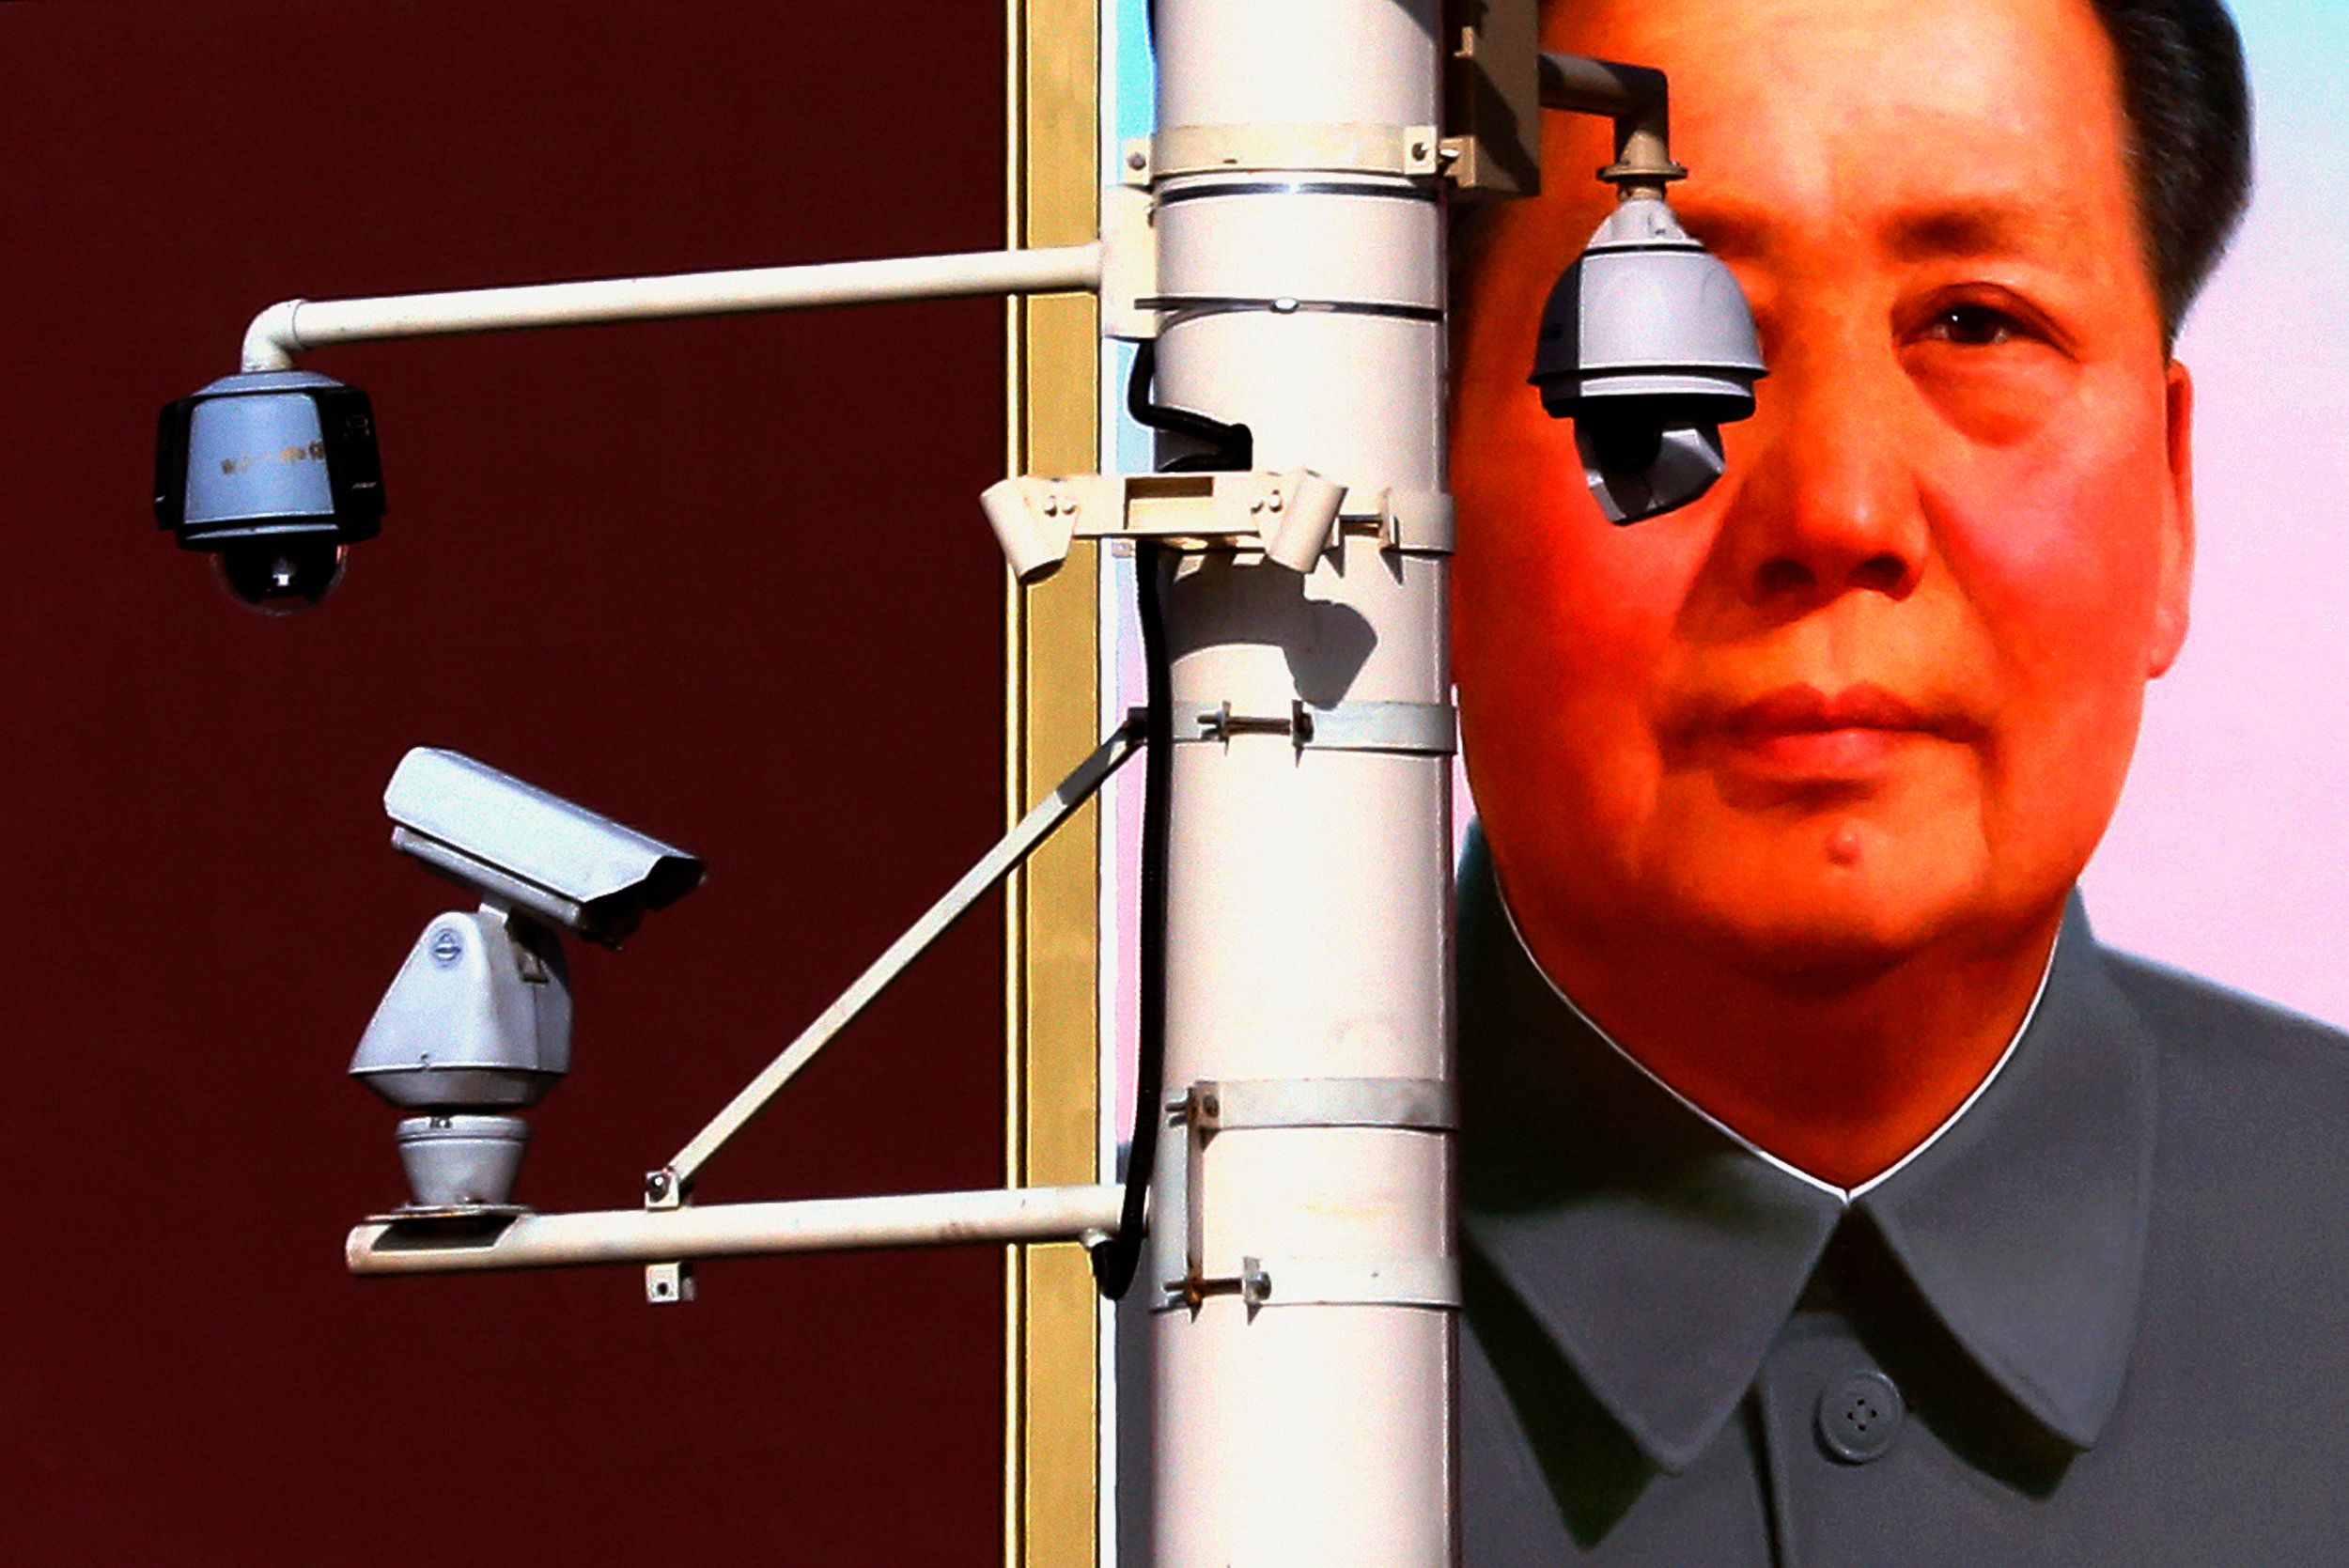 Security cameras are attached to a pole in front of the giant portrait of former Chinese Chairman Mao Zedong on Beijing's Tiananmen Square, near the Great Hall of the People where the 18th National Party Congress (NPC) is currently being held, November 11, 2012.     REUTERS/David Gray     (CHINA - Tags: SOCIETY POLITICS CIVIL UNREST TPX IMAGES OF THE DAY)